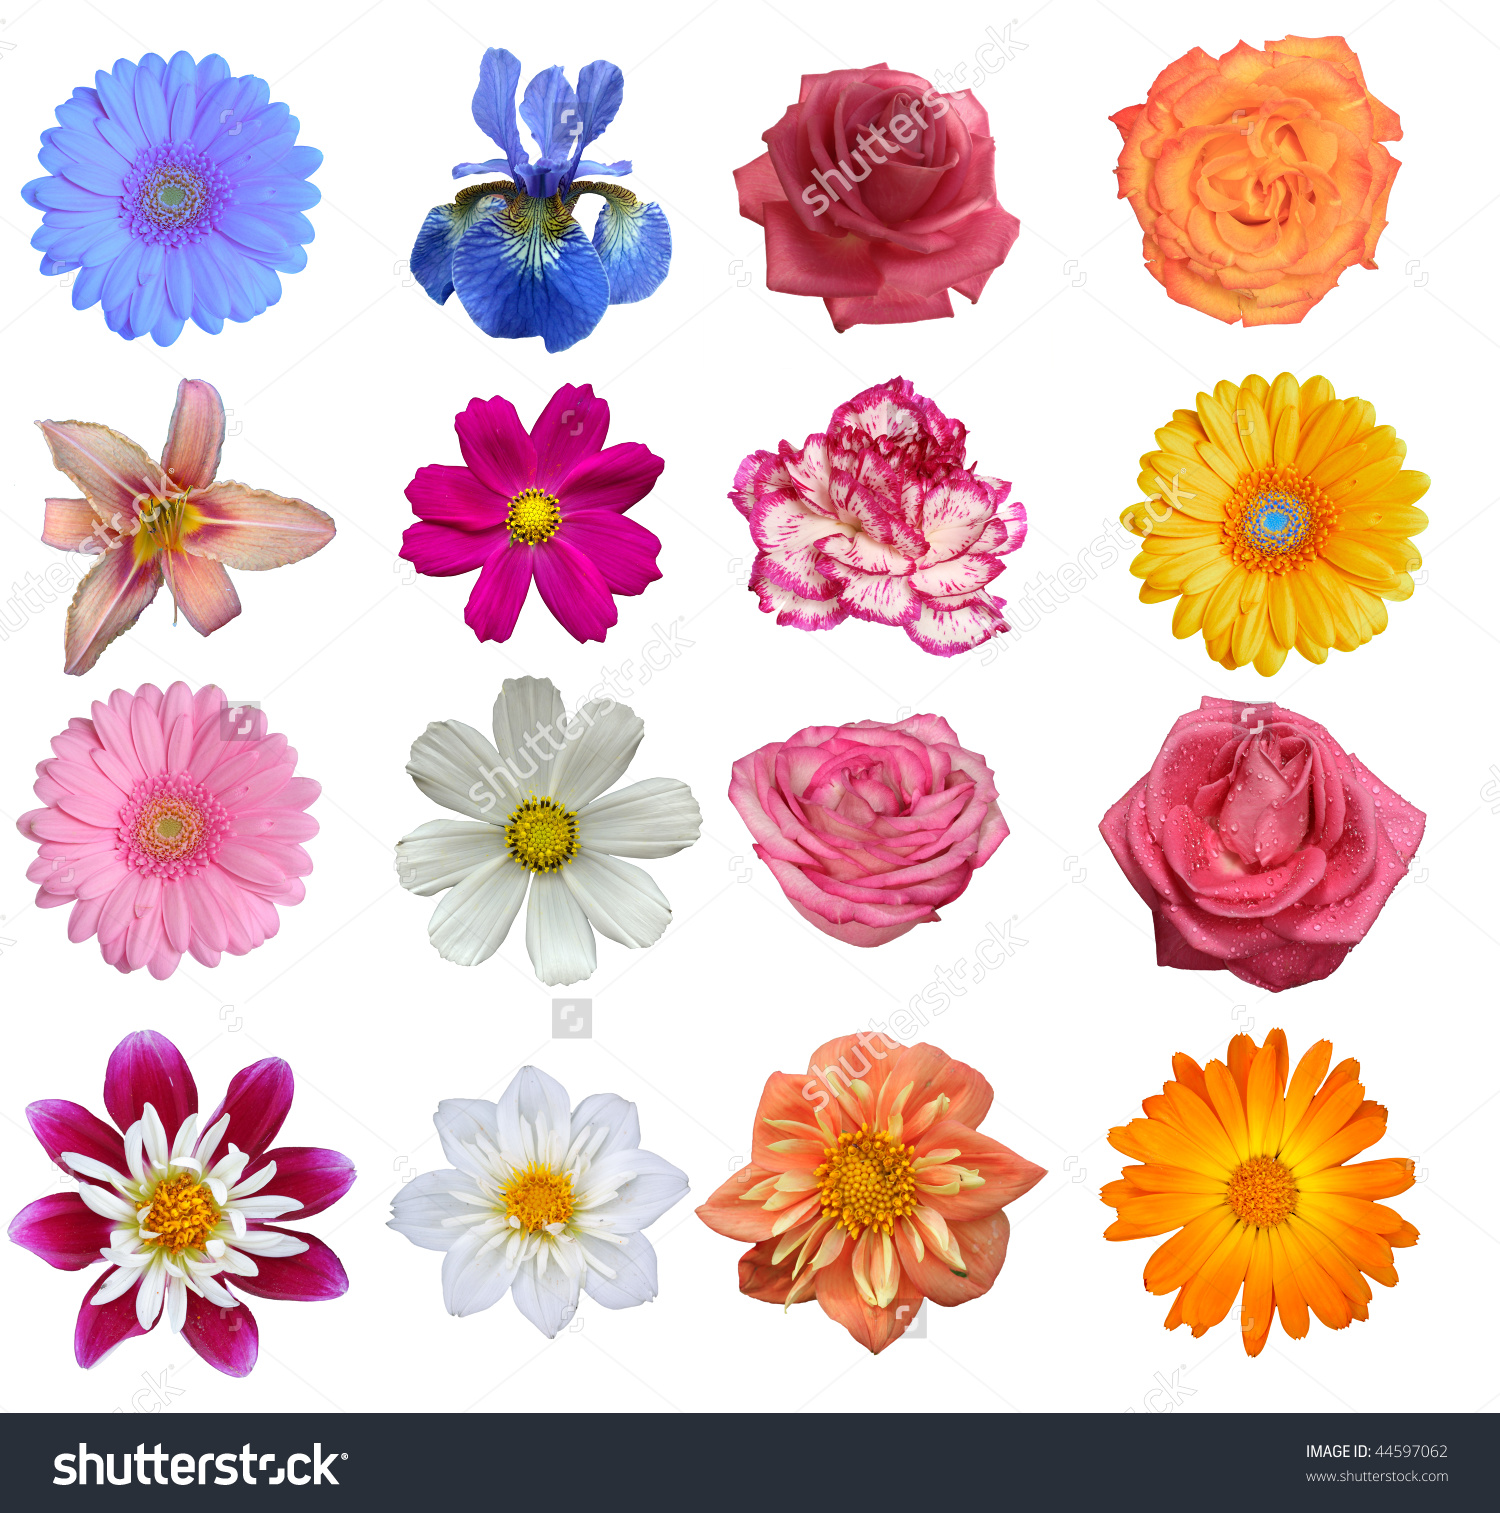 Flower Heads Isolated On White Background Stock Photo 44597062.